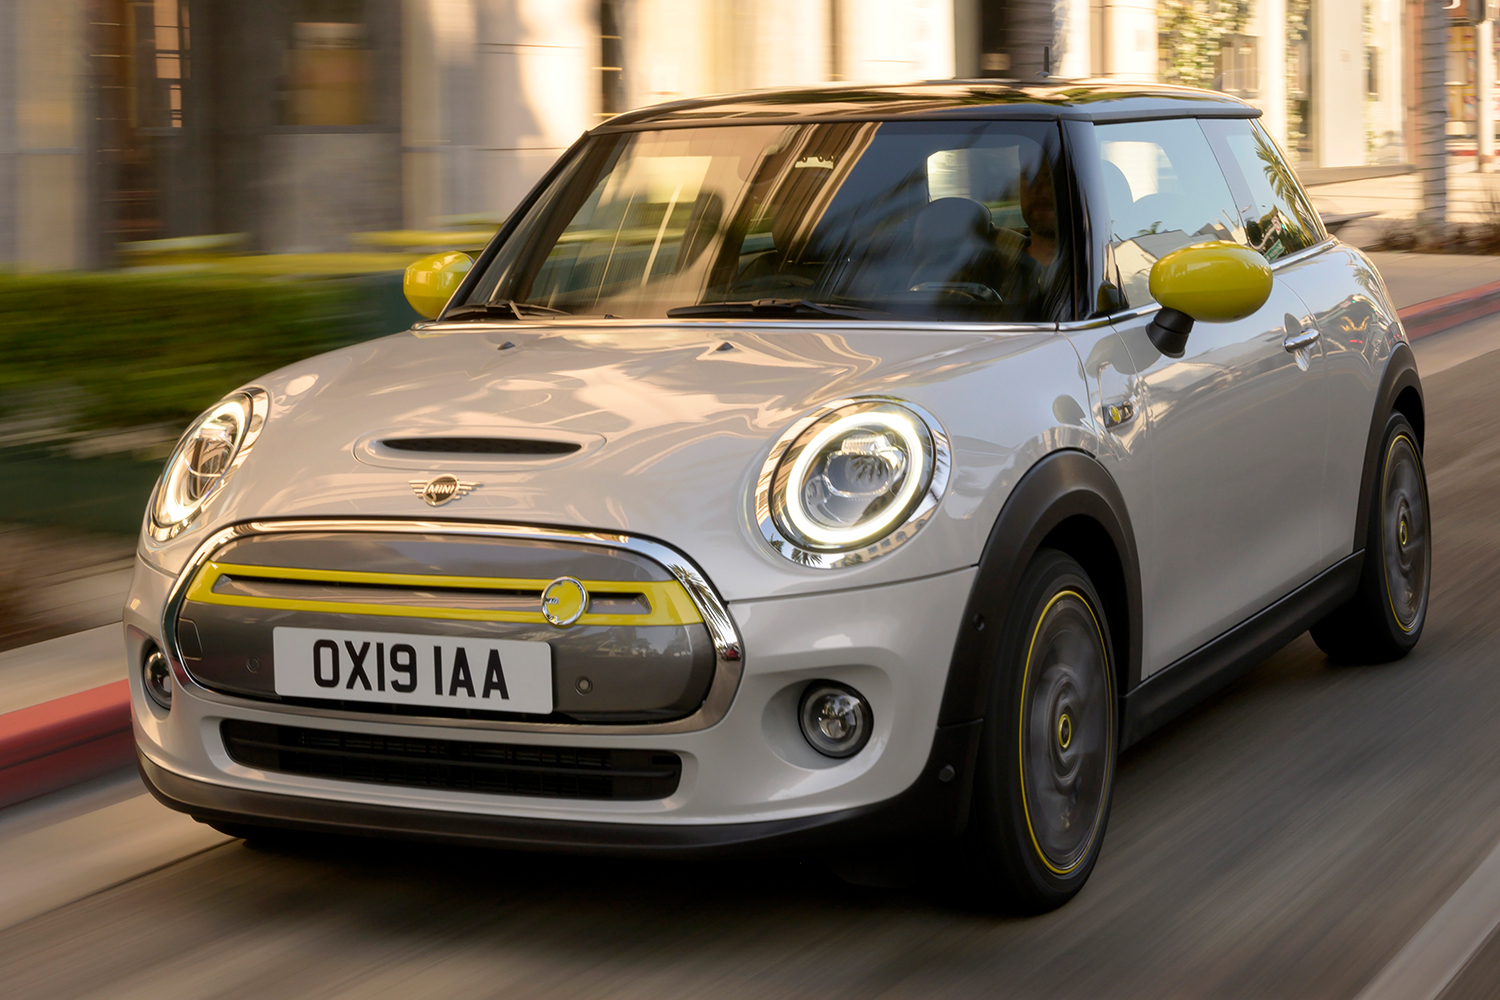 2020 Mini Cooper SE Electric Vehicle From BMW Group